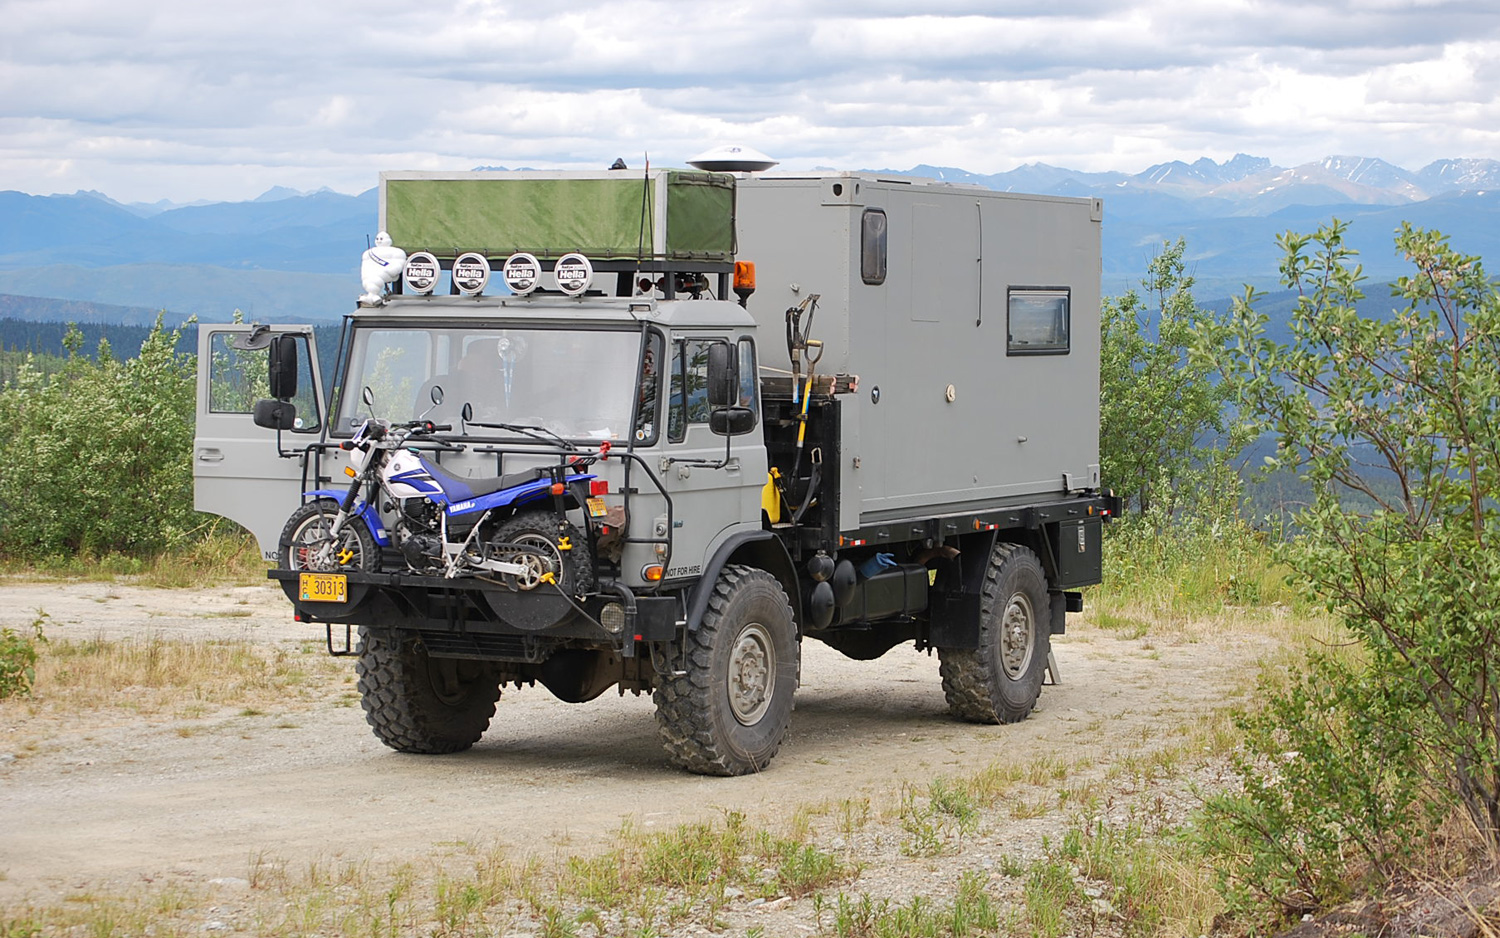 Daf Ya 4440 Expedition Truck Motortrend